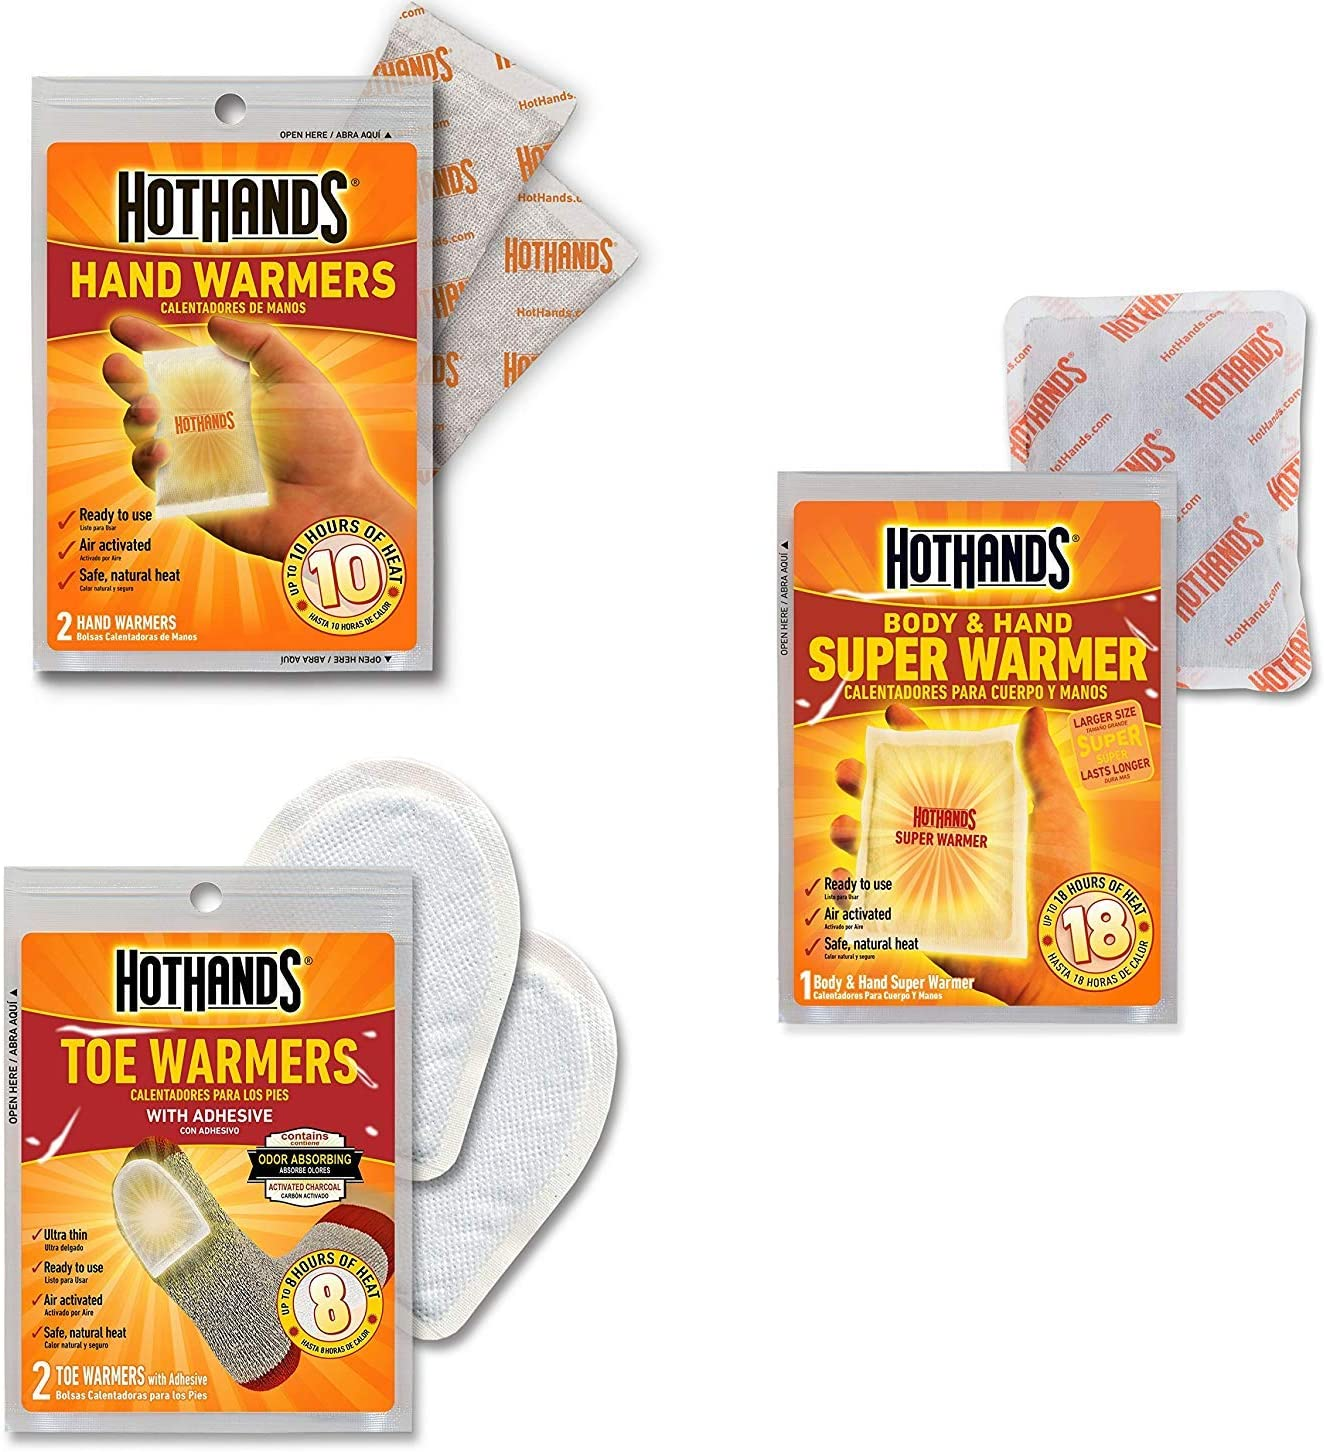 HotHands Body /& Hand Super Warmers Up Long Lasting Safe Natural Odorless Air